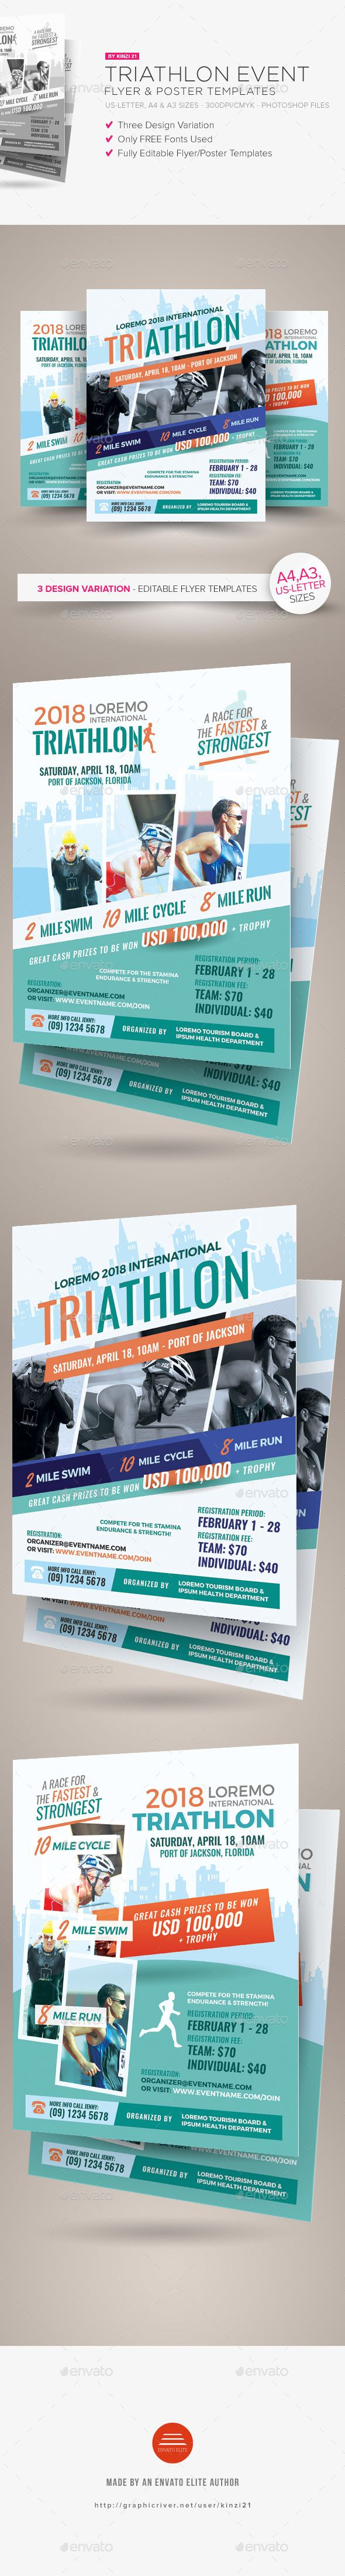 Triathlon Event Flyer and Poster Templates - Download the source-files: https://graphicriver.net/item/triathlon-event-flyer-and-poster-templates/19477085?r=kinzi21